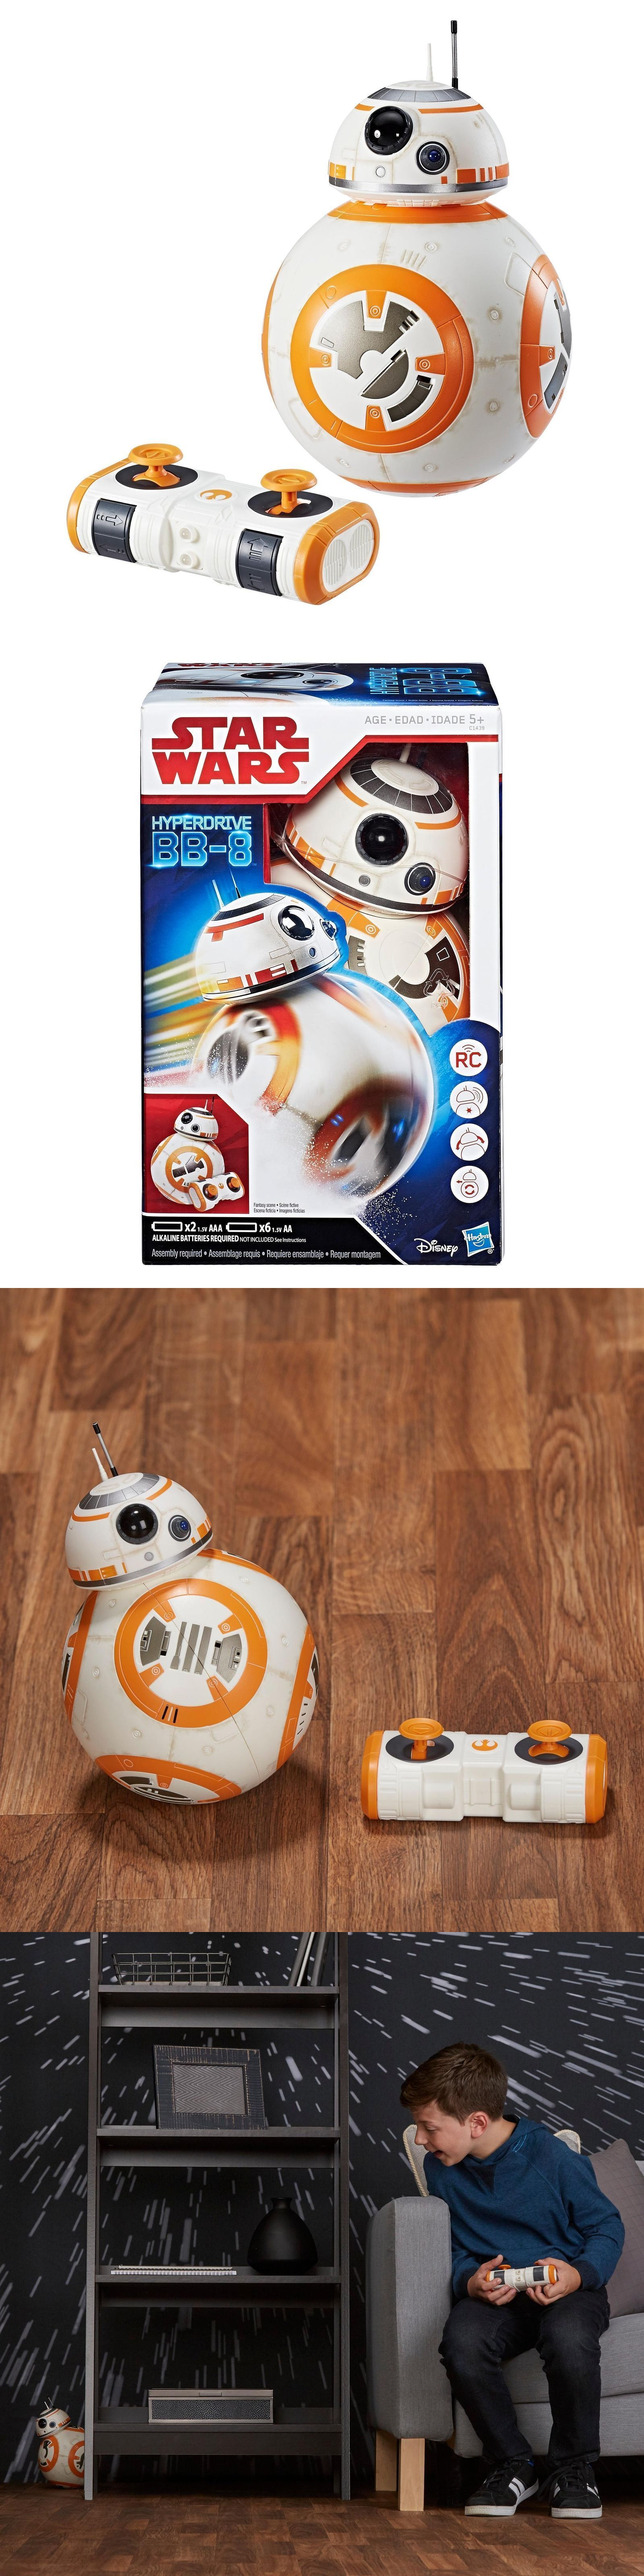 Star Wars BB-8 HYPERDRIVE Remote Control RC Toy Hasbro Disney BRAND NEW